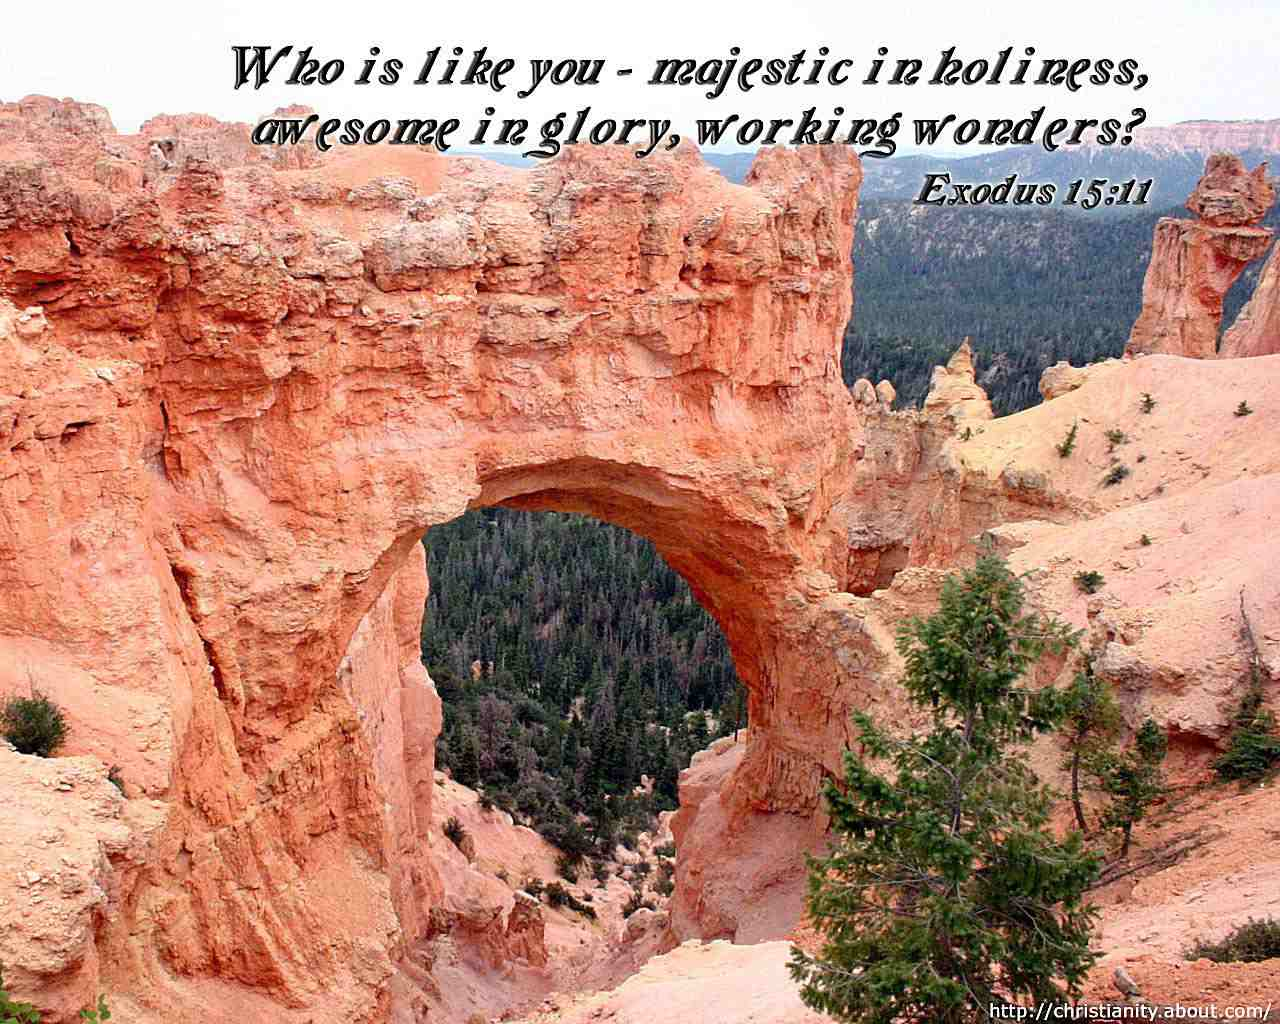 Majestic Wonders with bible quote